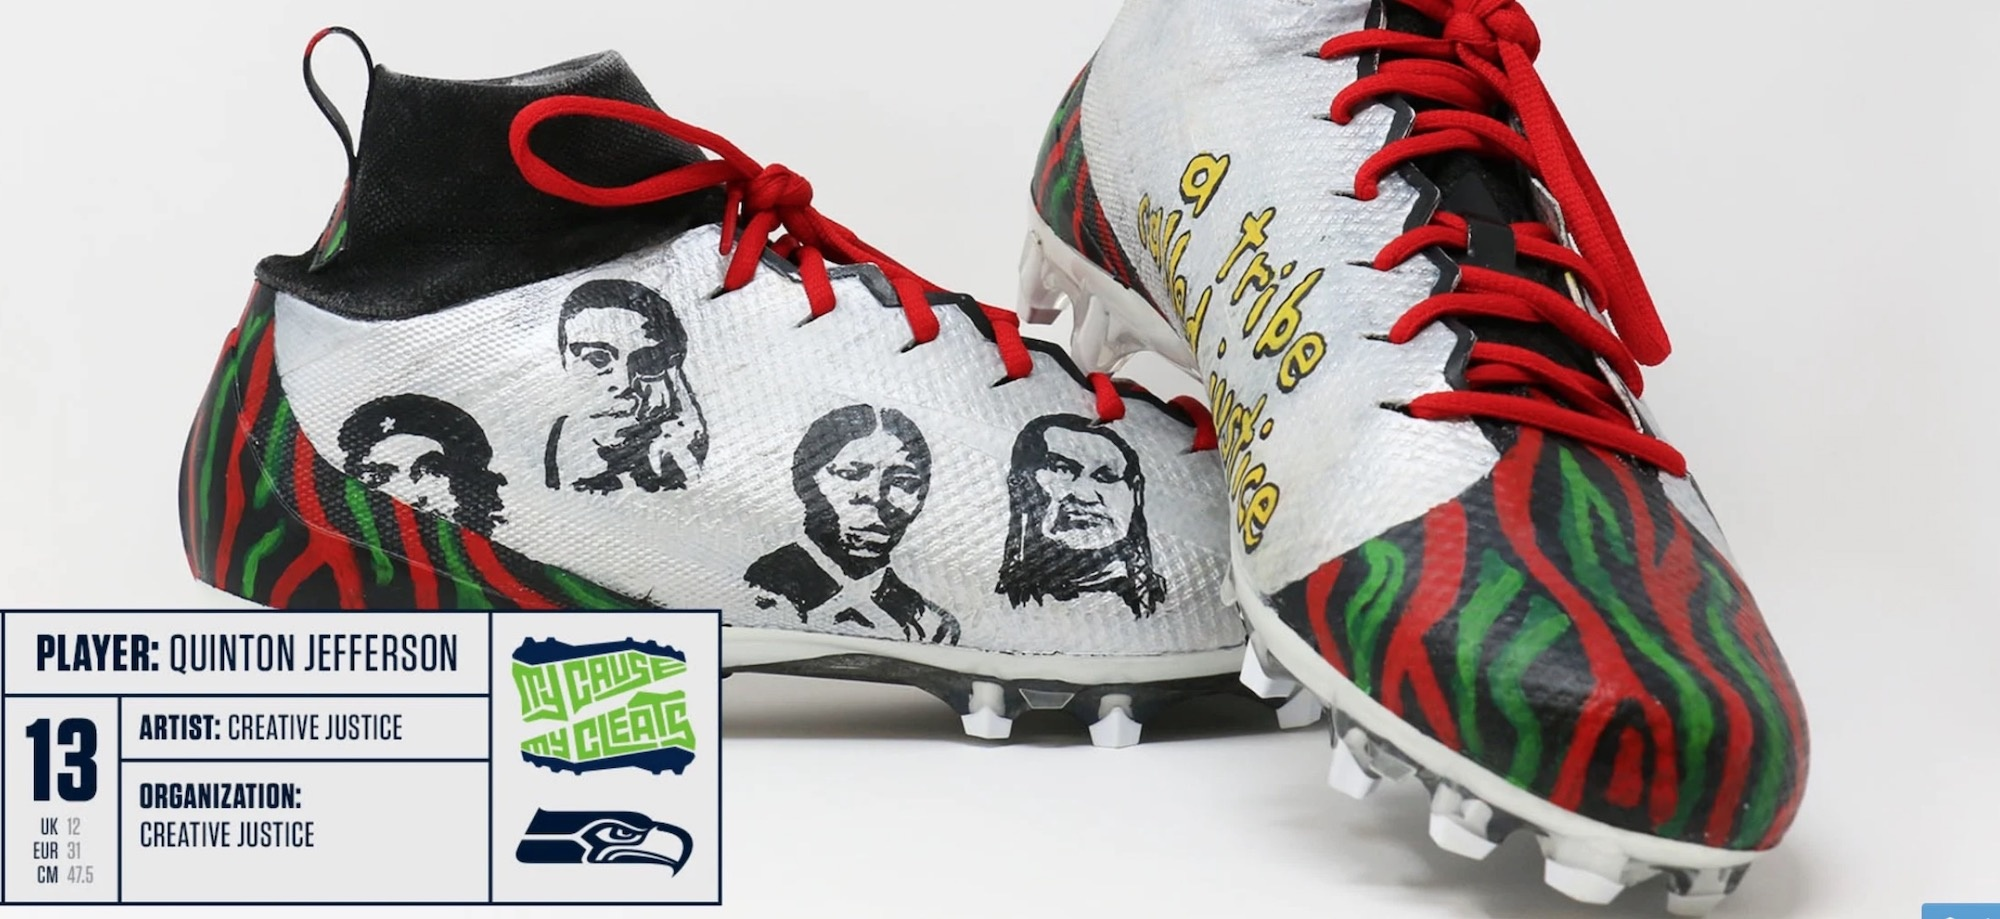 Seattle Seahawks player to wear 'My Cause My Cleats' design with image of Che Guevara